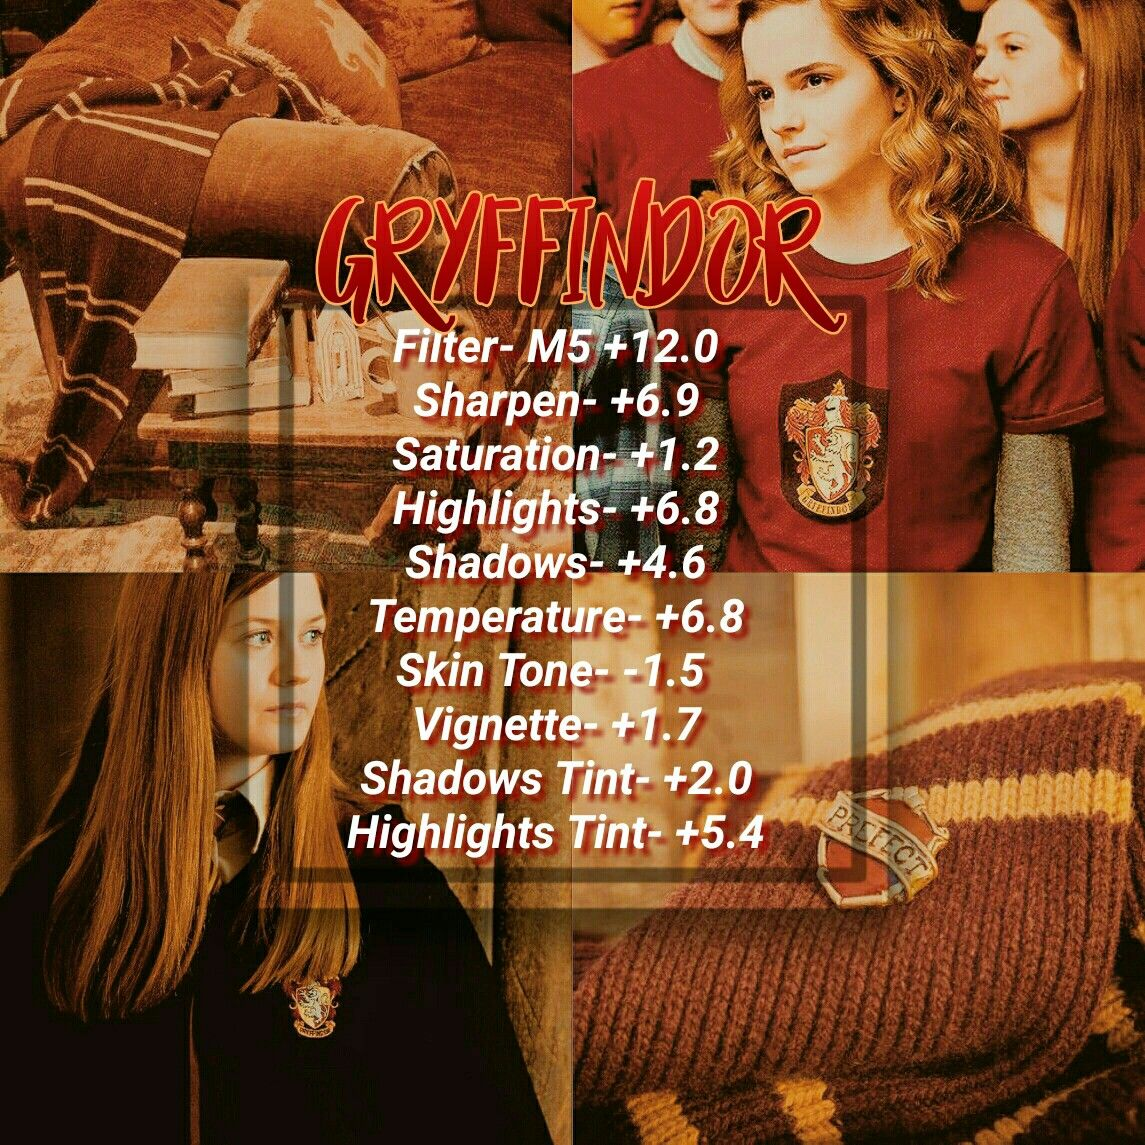 Gryffindor Filter Photo Editing Techniques Vsco Filter Instagram Photo Editing Vsco